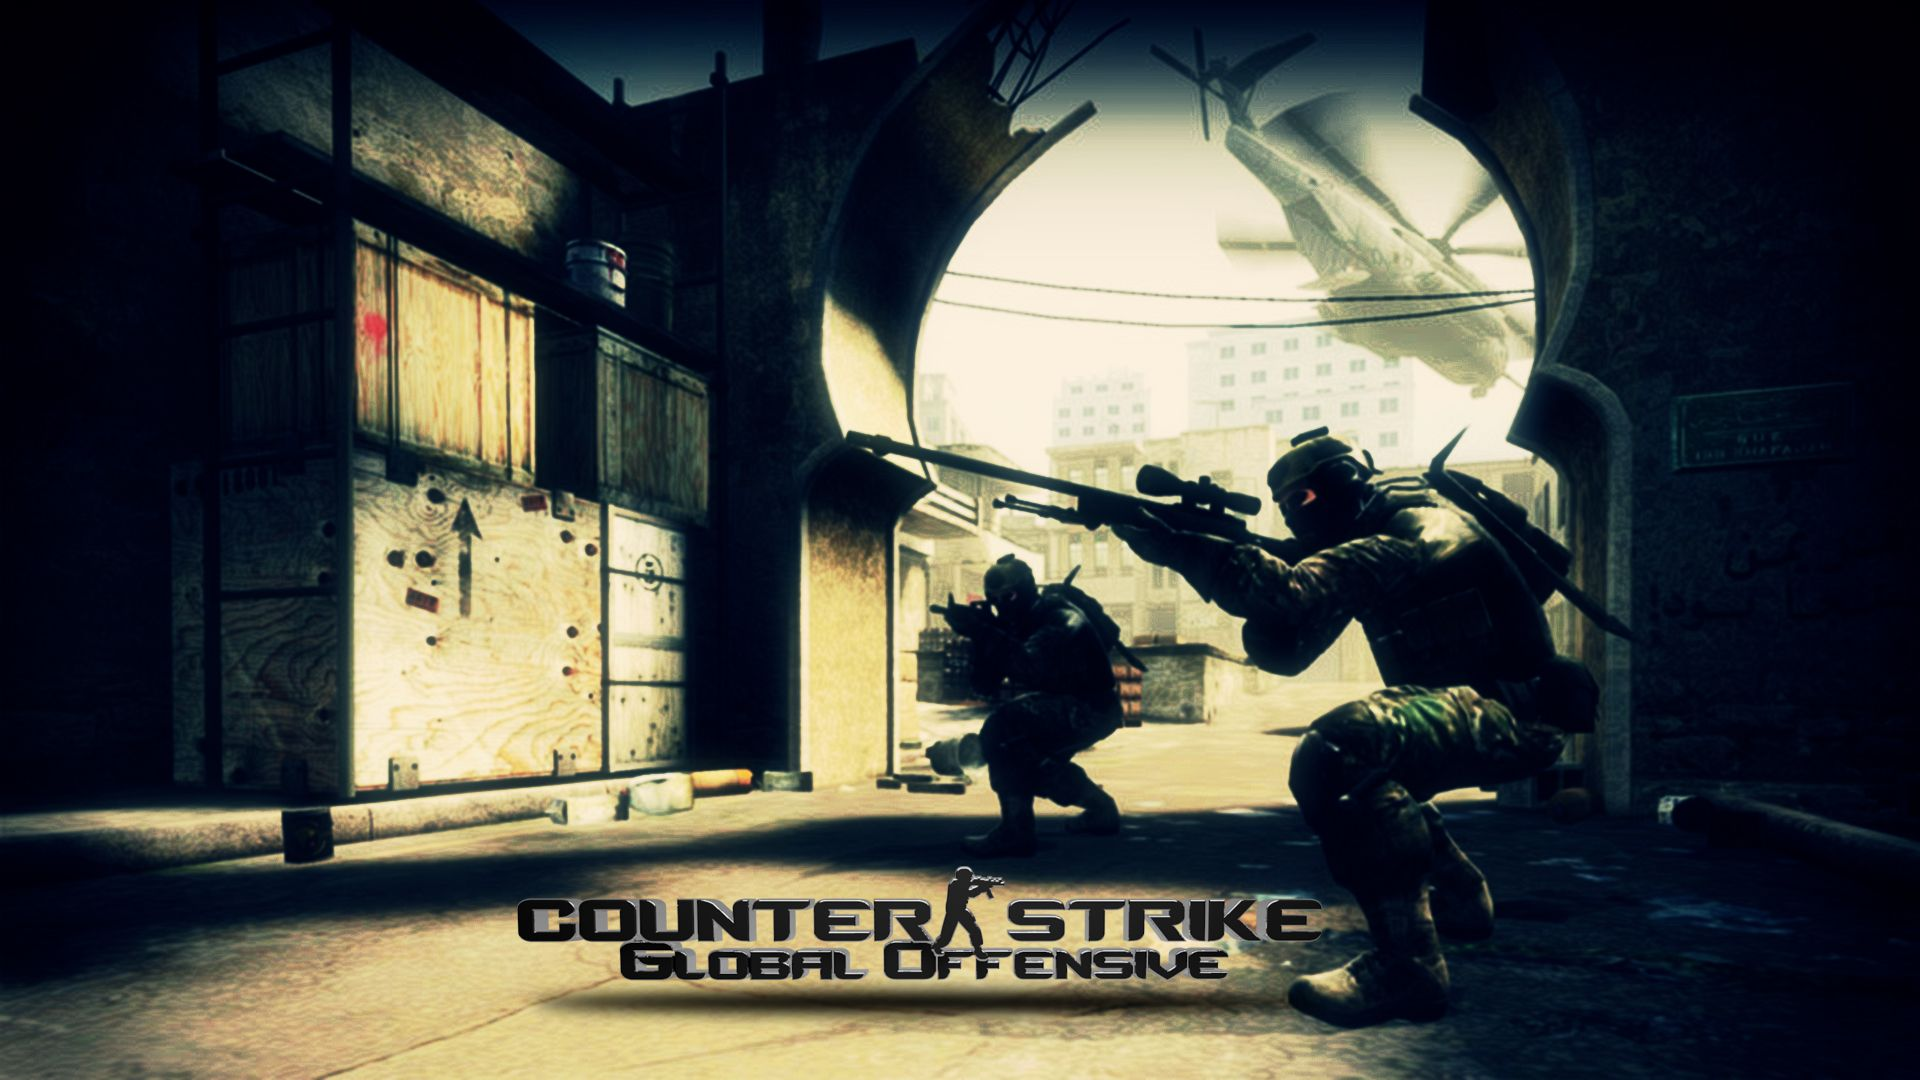 Counter-Strike: Global Offensive Pictures